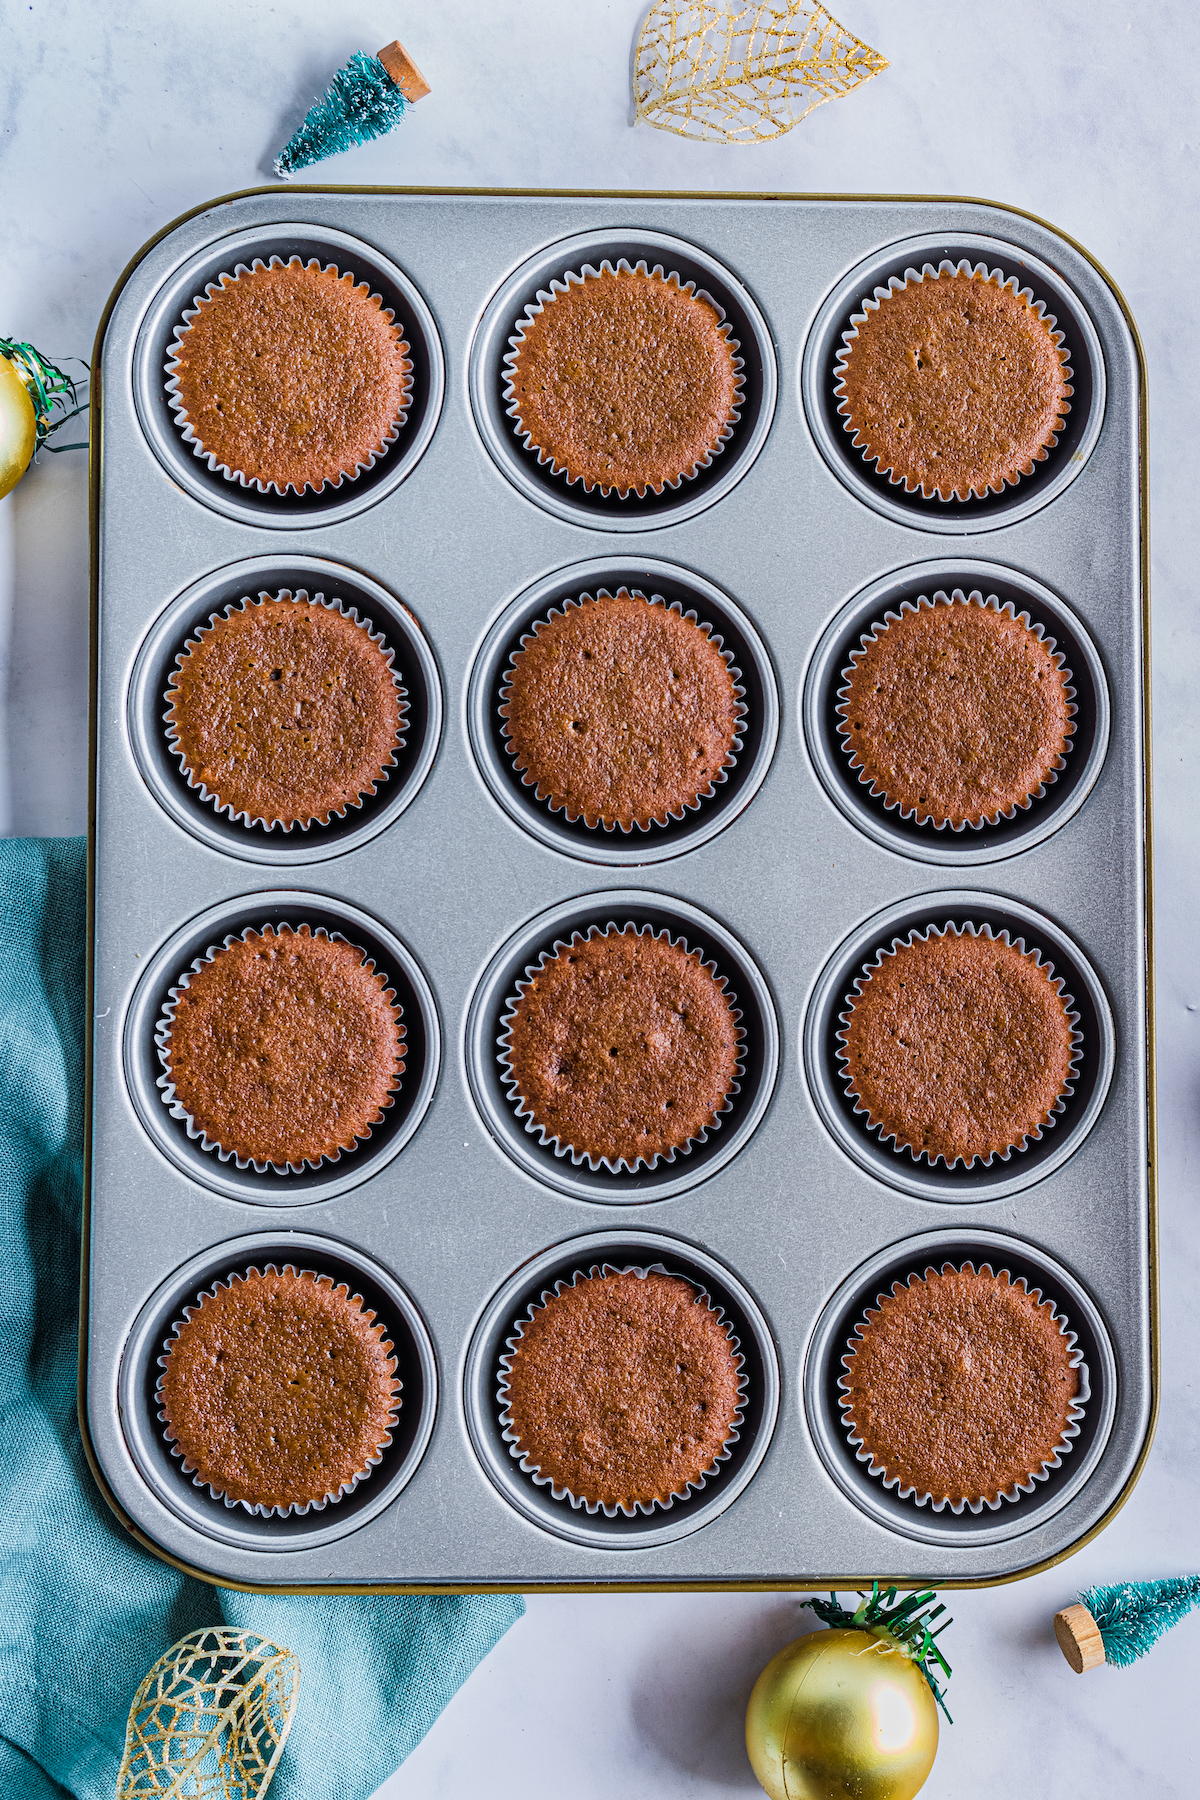 top down view of the cooked gingerbread cupcakes inside the baking pan